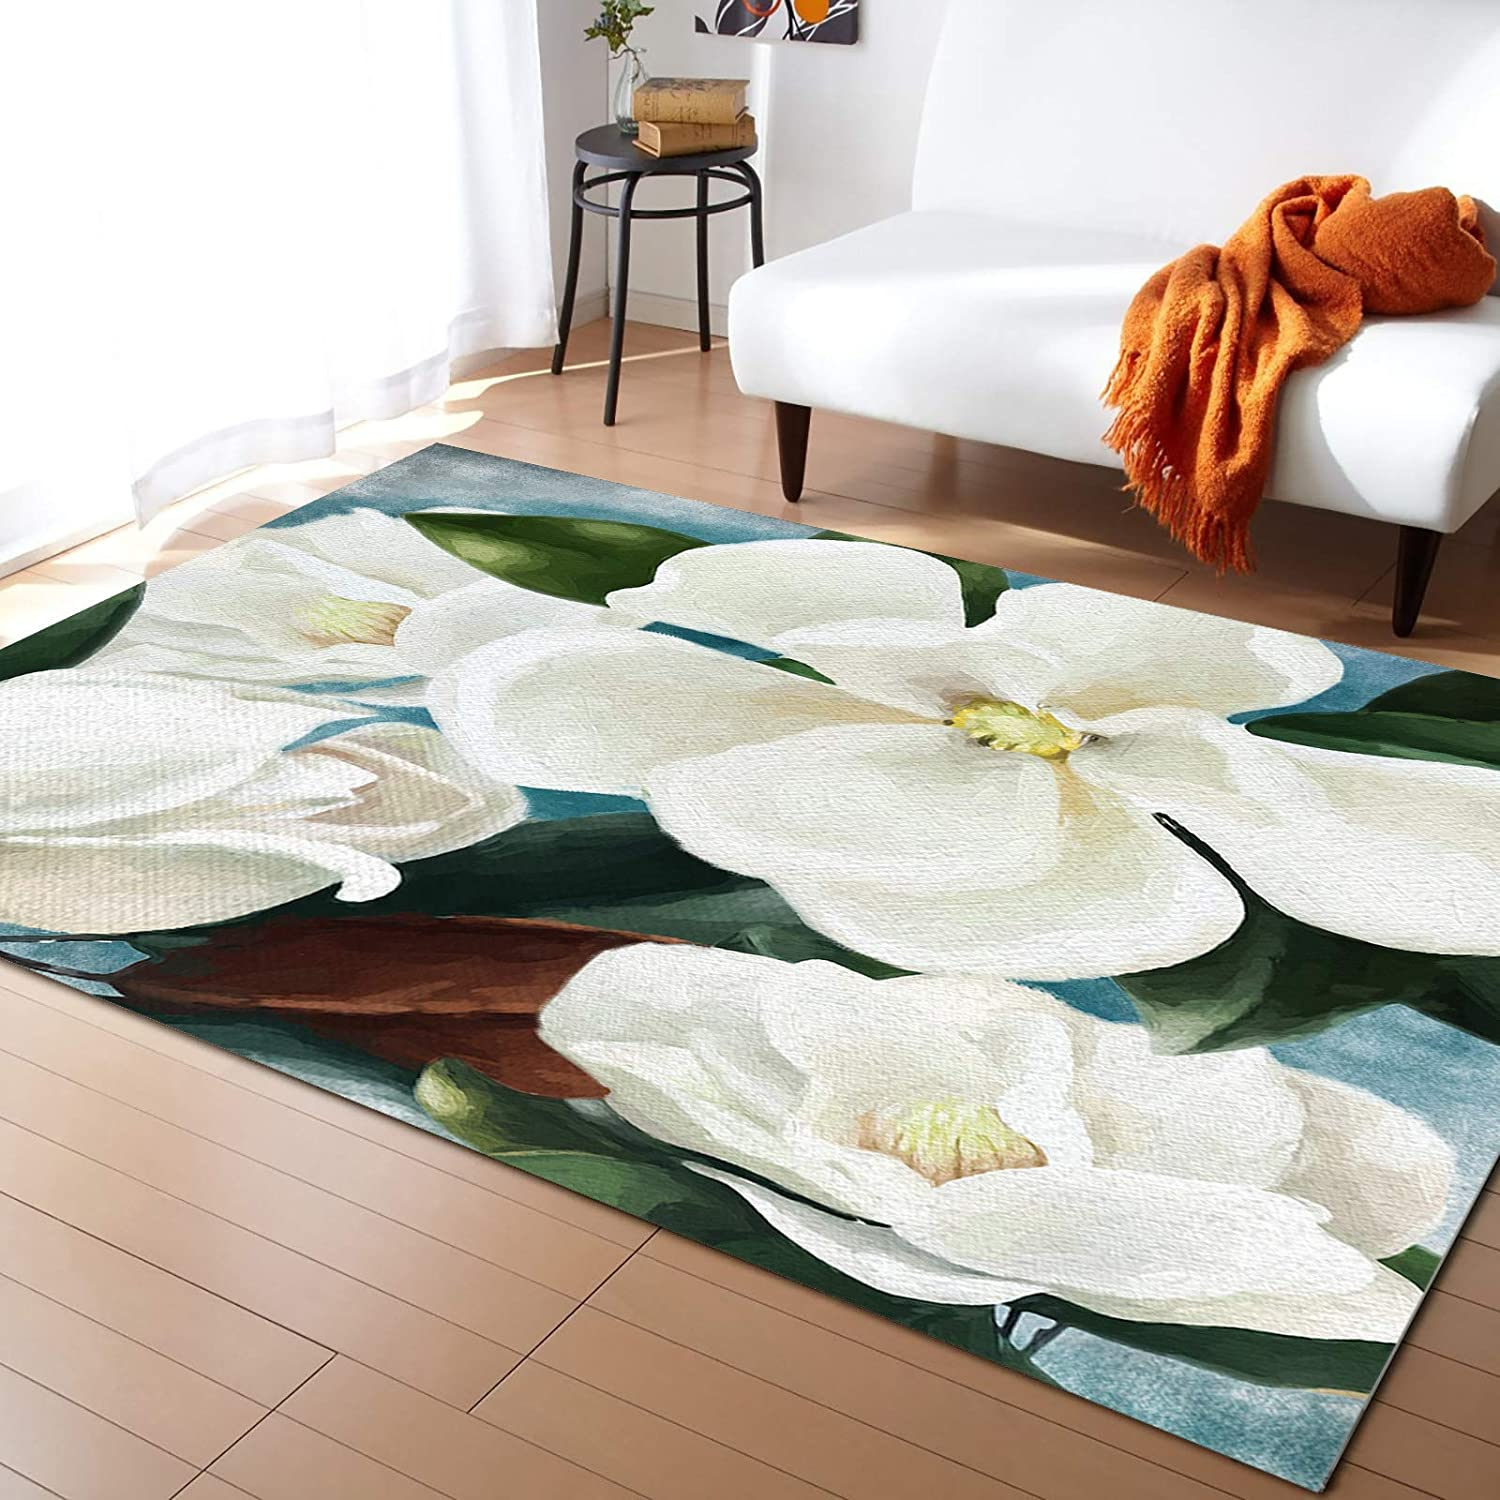 Olivefox Rugs White Magnolia Flower Area Rug Non-Slip Stain-Proof Accent Area Rug for Bedroom Living Room Home Decoration, 2x3 Feet Soft Rectangle Carpet Super Absorbent